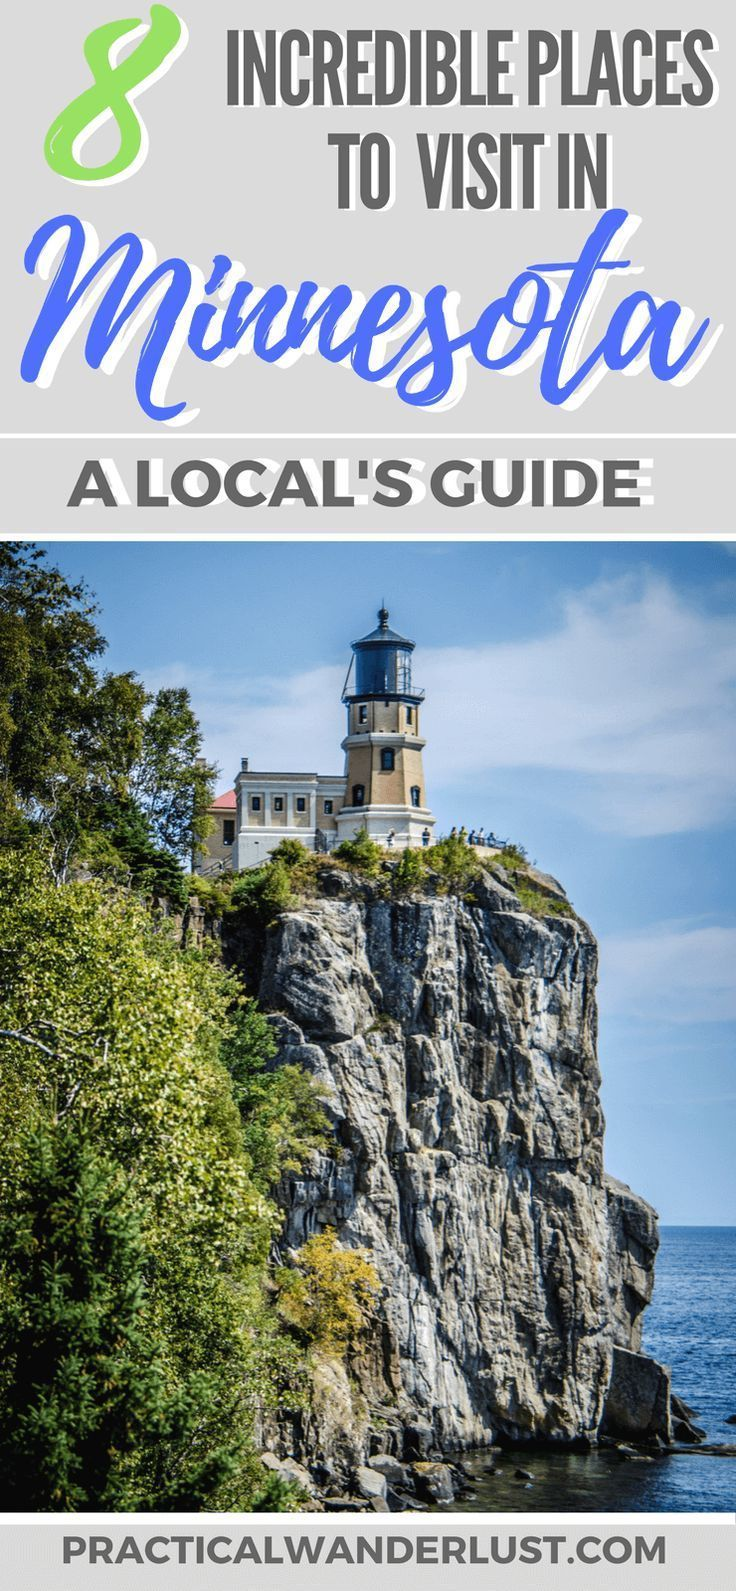 8 Incredible Places to Visit in Minnesota: A Local's Guide -   19 travel destinations United States adventure